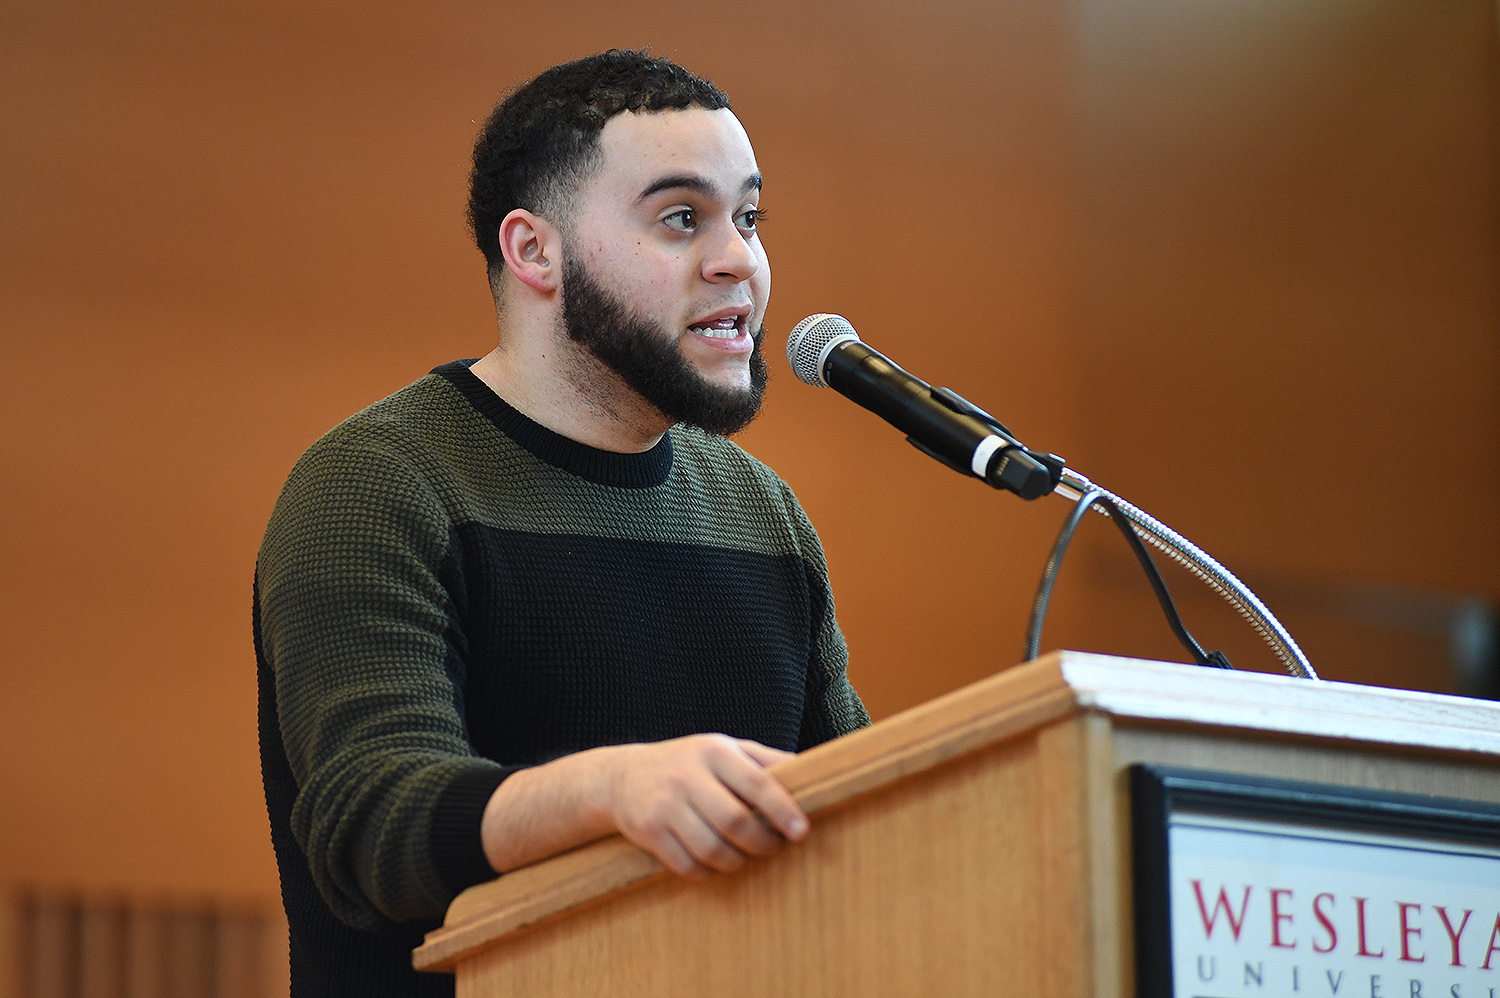 Isaac Guzman '21 introduced the keynote speaker, Joi Lewis. Utilizing the Orange Method framework, which is grounded in the deep concept of healing justice to invite, inspire, explore, and unpack the practice of radical self-care as source, site, and agency tool for Black Liberation and Freedom, Lewis uses poetry, song, and stories to illuminate how individuals and institutions transform and move towards true liberation, even against the backdrop of racism and oppression-induced toxic stress and trauma.